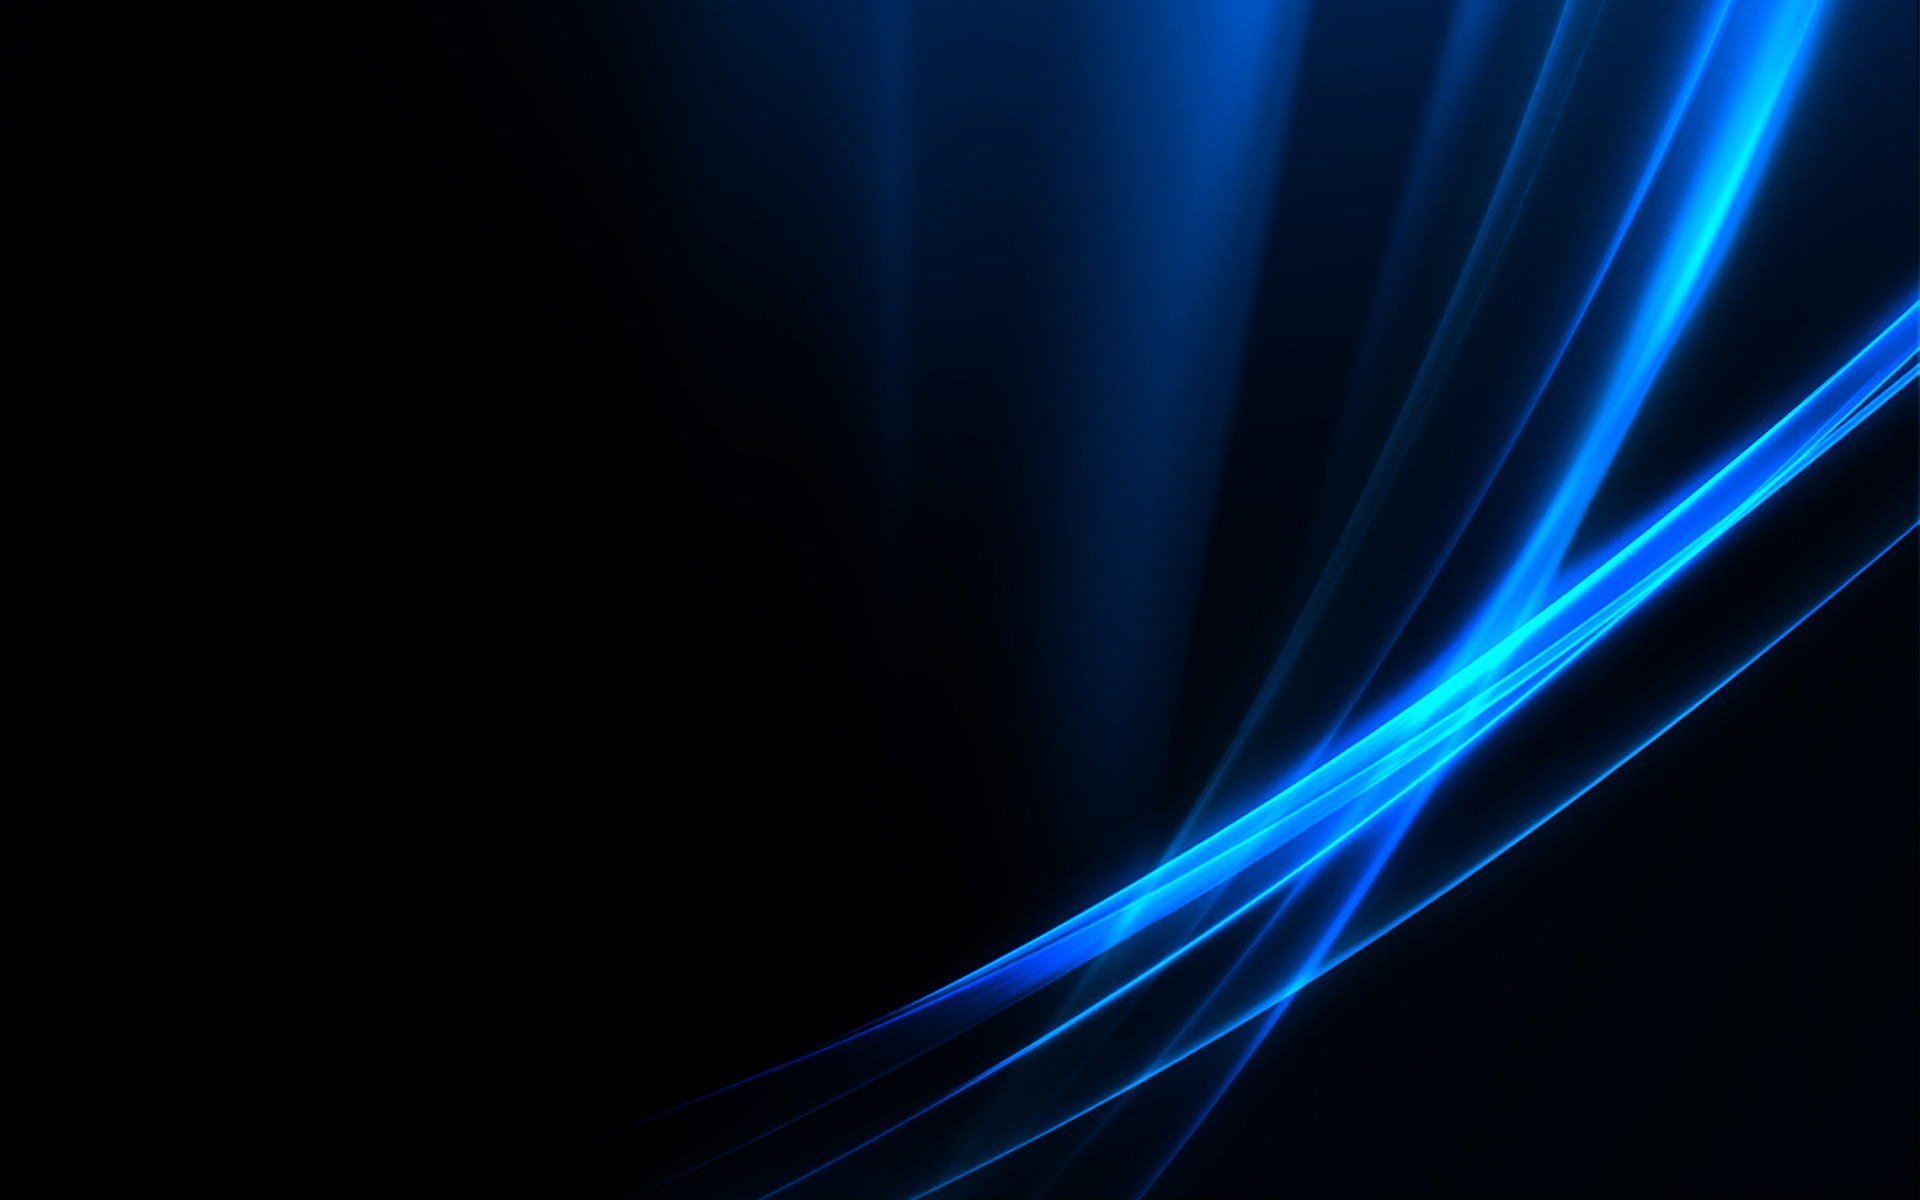 Black and Blue Abstract Desktop Background HD 1920x1200 1920x1200